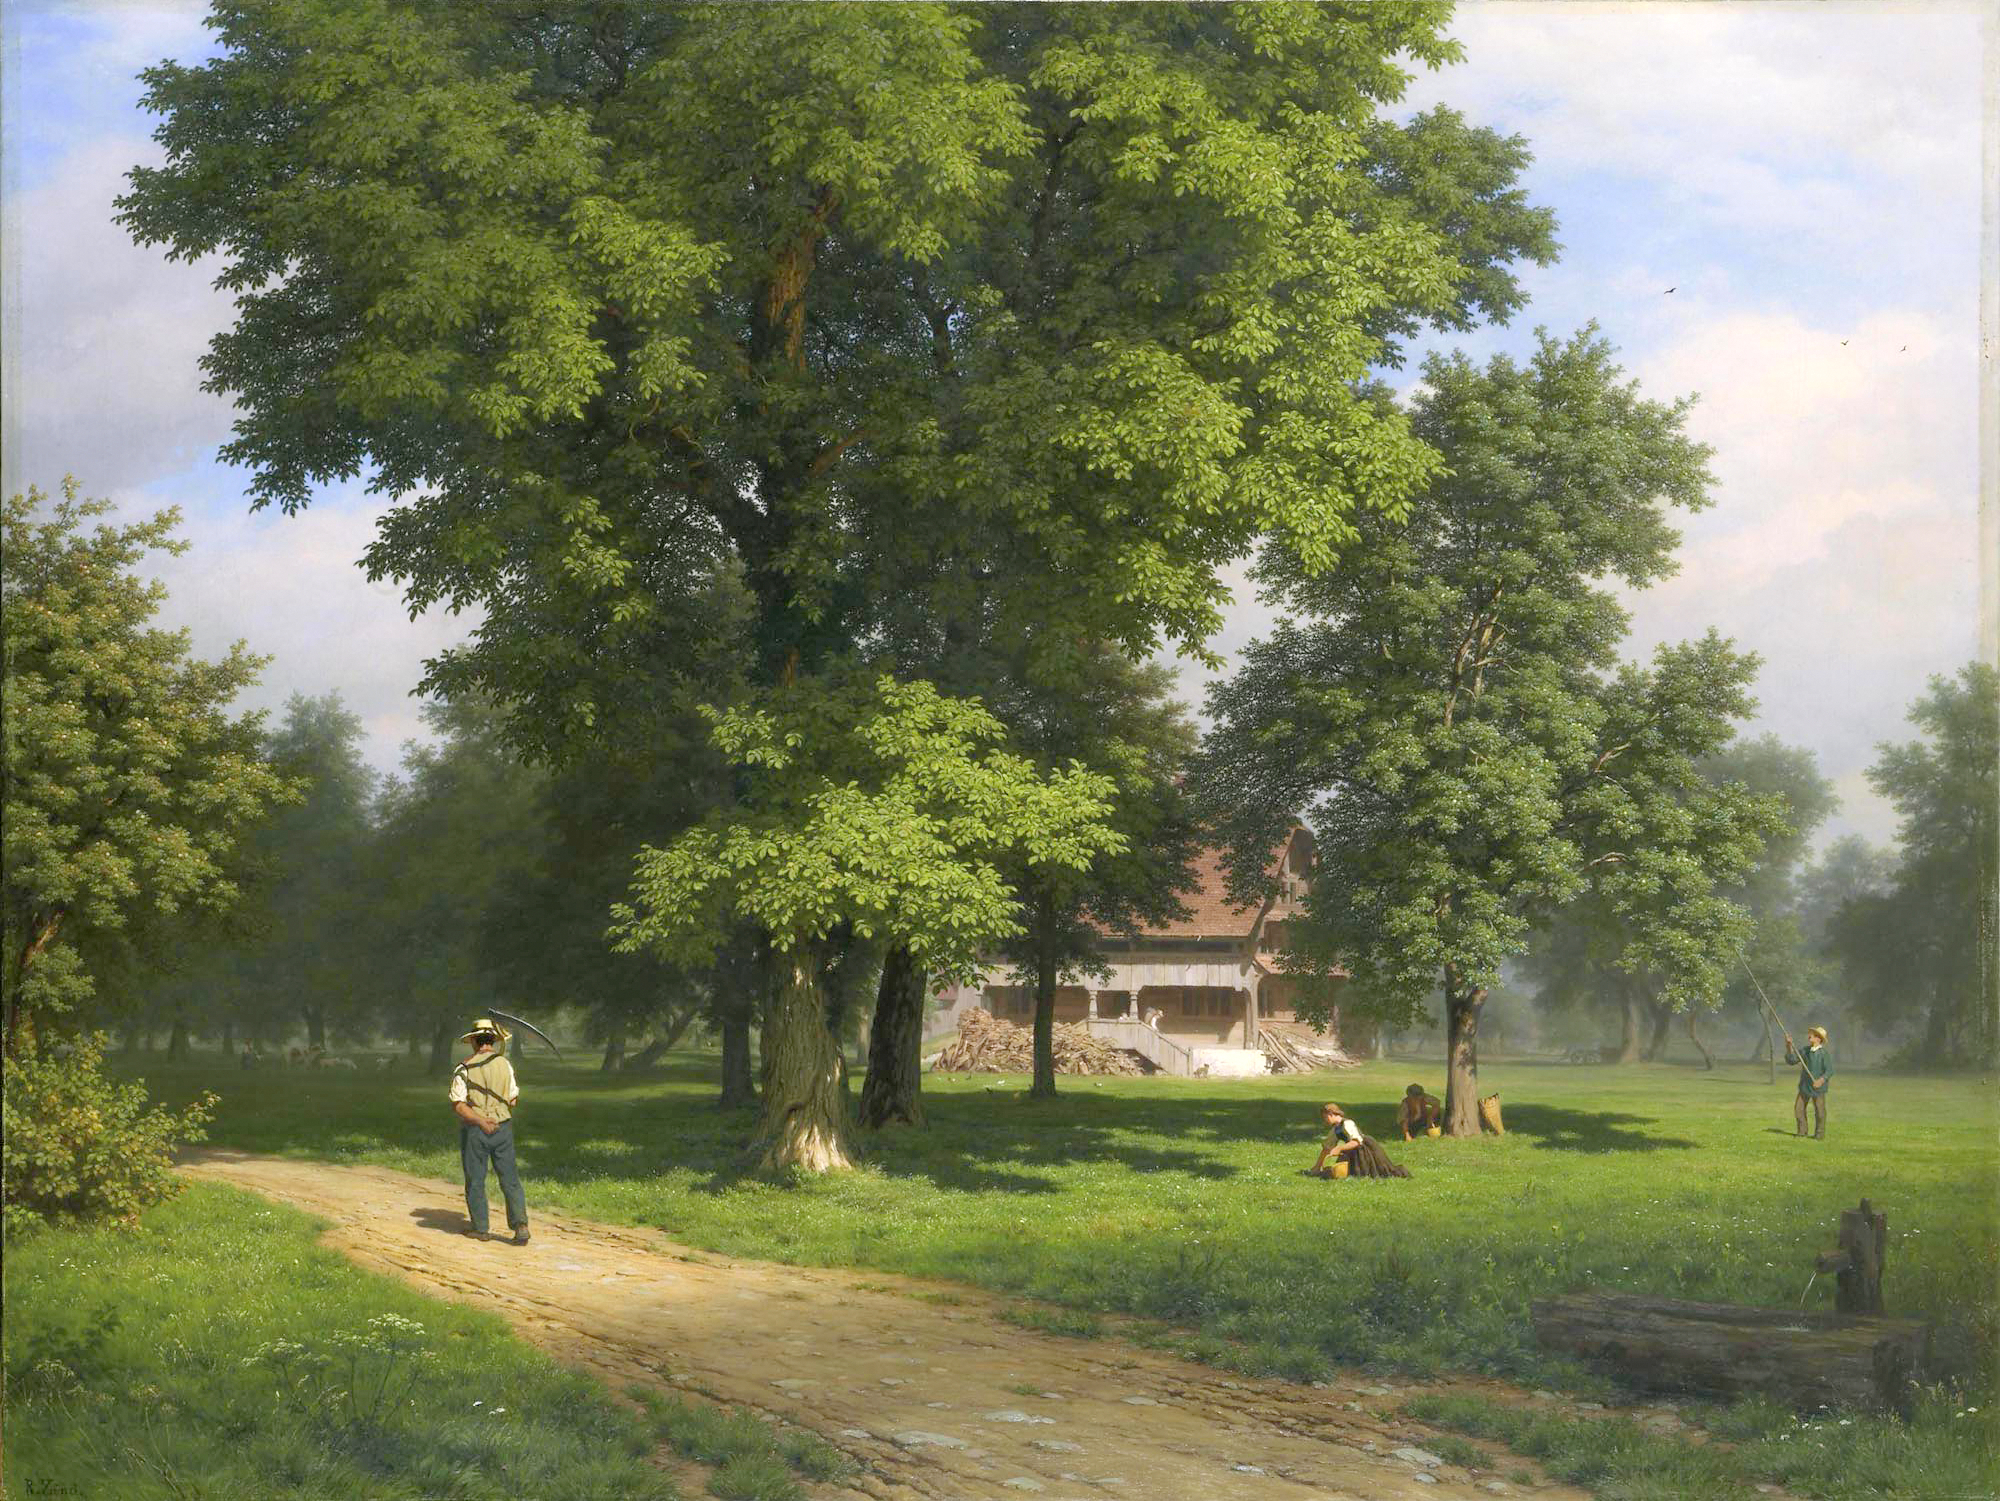 Robert Zünd – private collection. Title: Haus zwischen Nussbäumen (Schellenmatt). Date: c. 1850-1900. Materials: oil on canvas. Dimensions: 118.5 x 158.5 cm. Sold by Sotheby's in Zürich, on May 27, 2008. Source: http://www.mfa.org/collections/object/lake-george-33800. I have changed the light and contrast of the original photo.